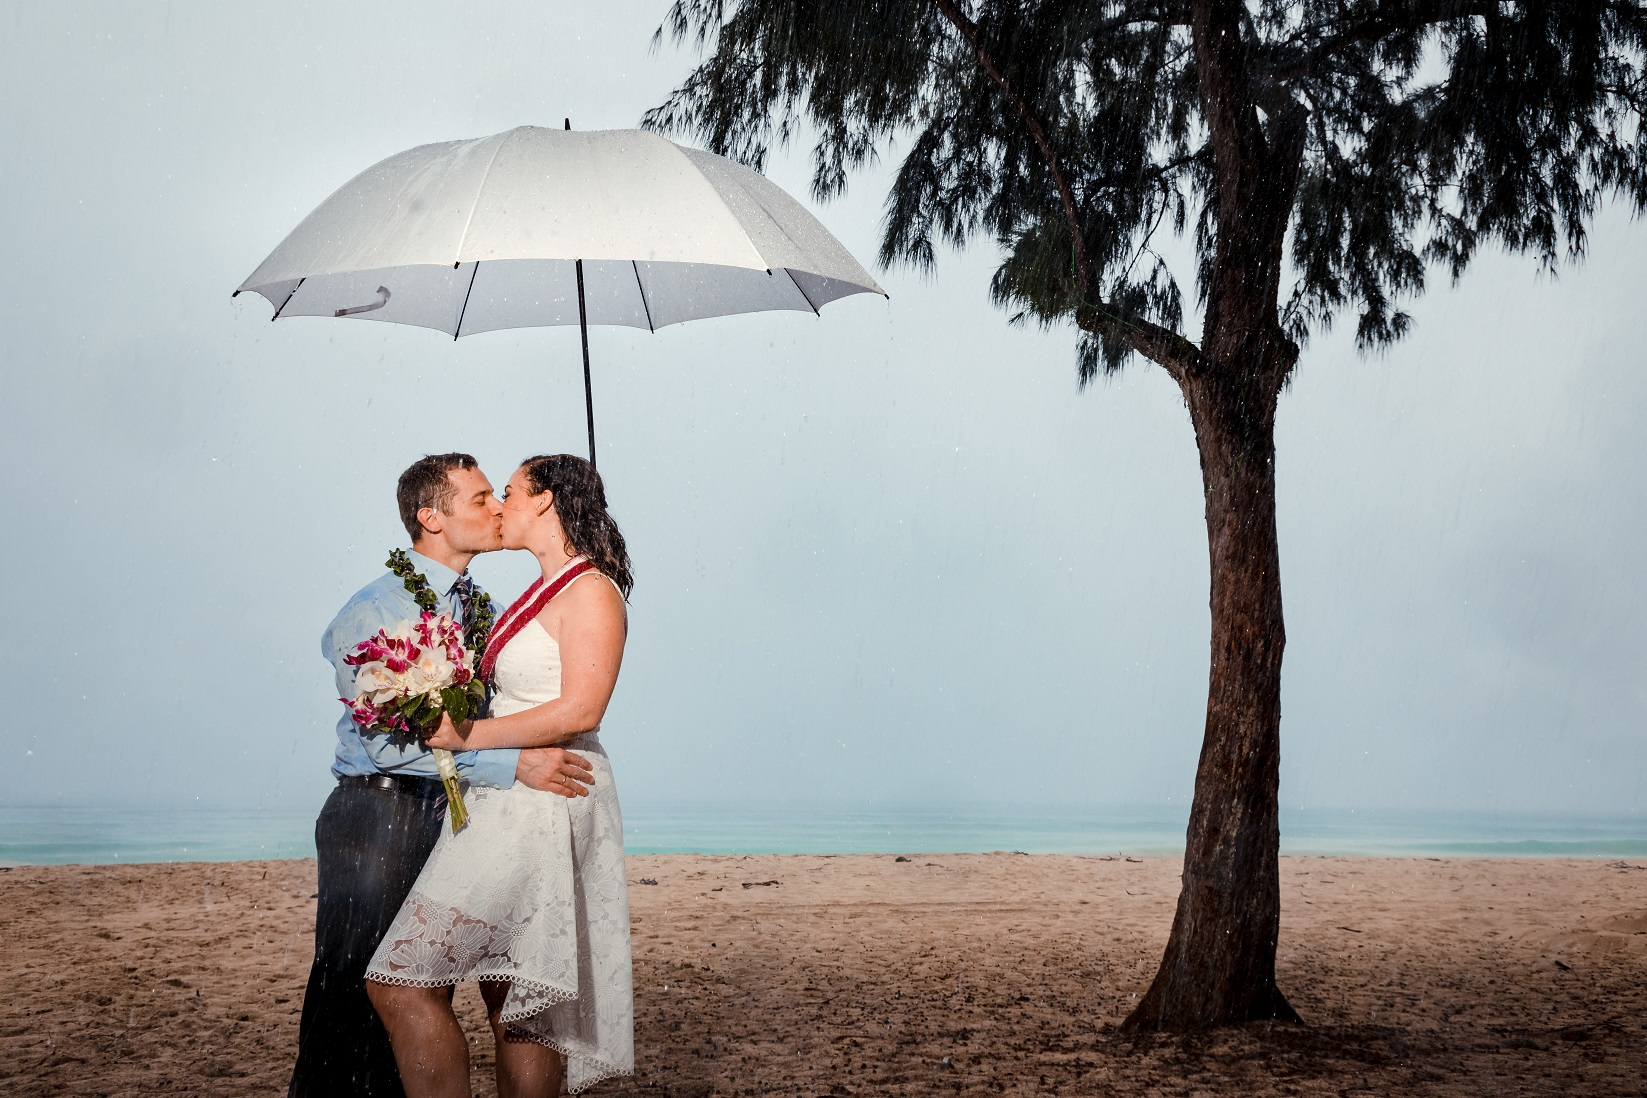 ...turned to rain just after the ceremony as a squall swept thru....